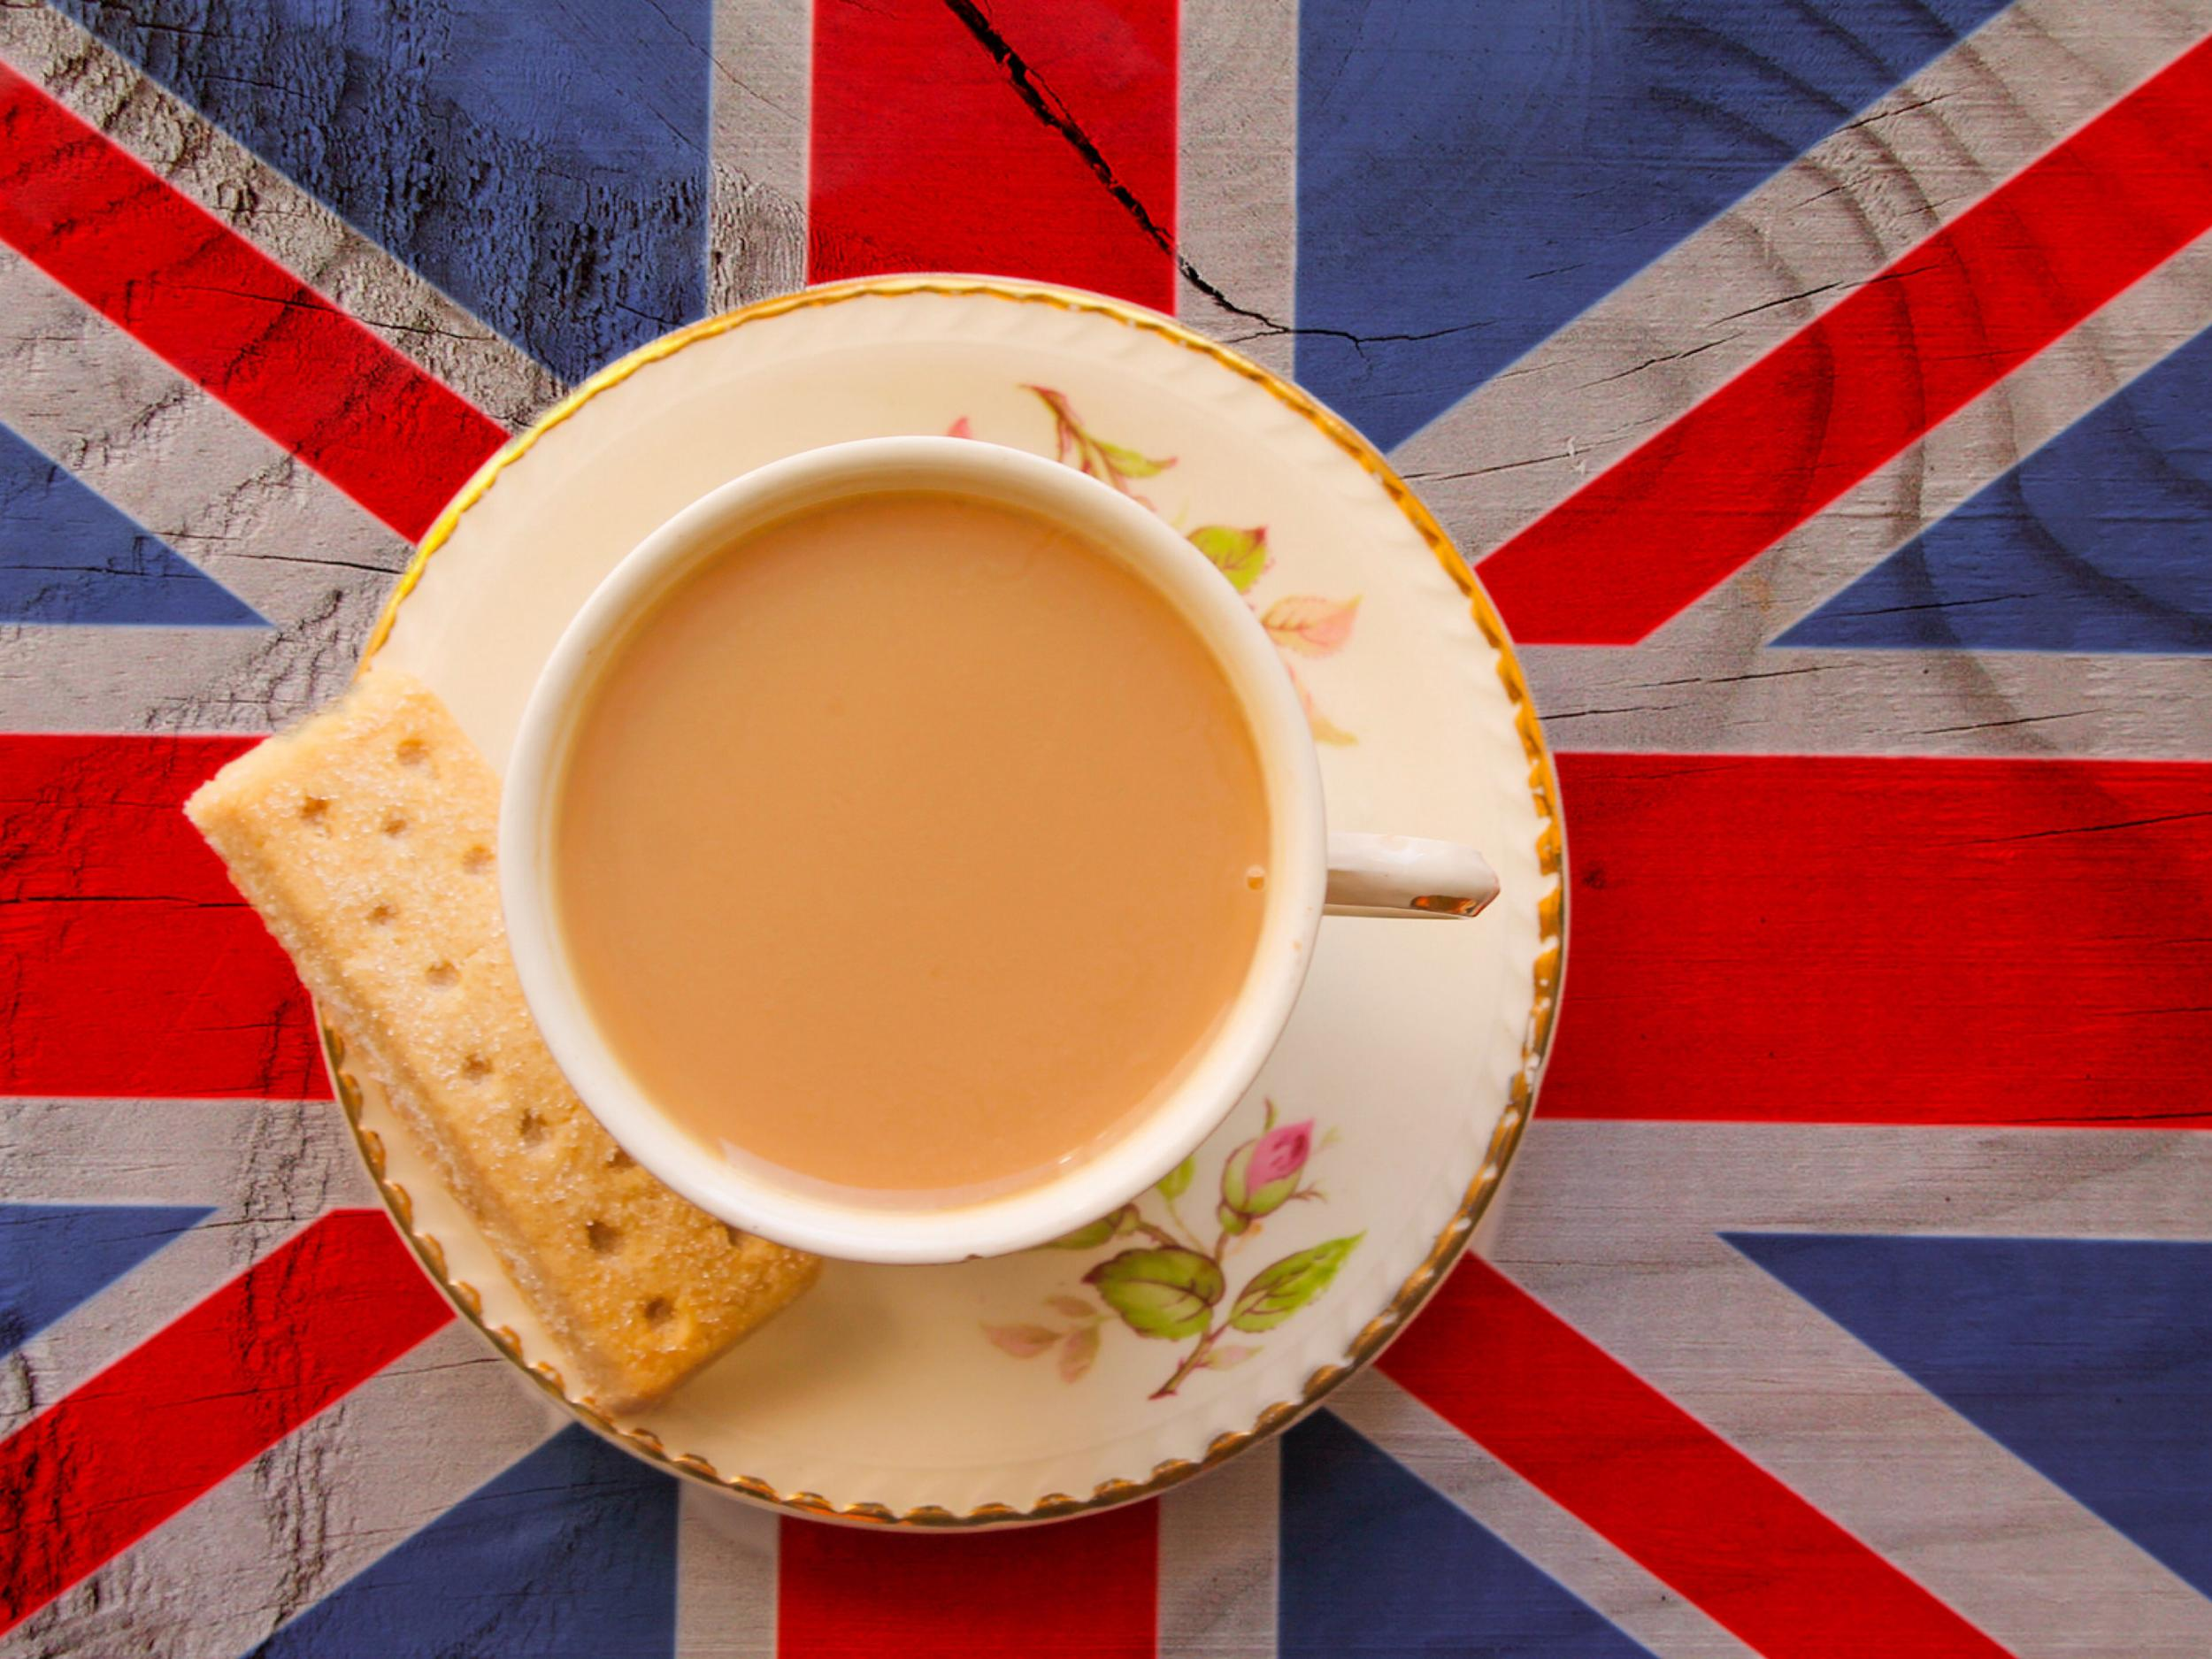 History of tea in the UK Google Doodle: How Britain fell out of love with its national drink